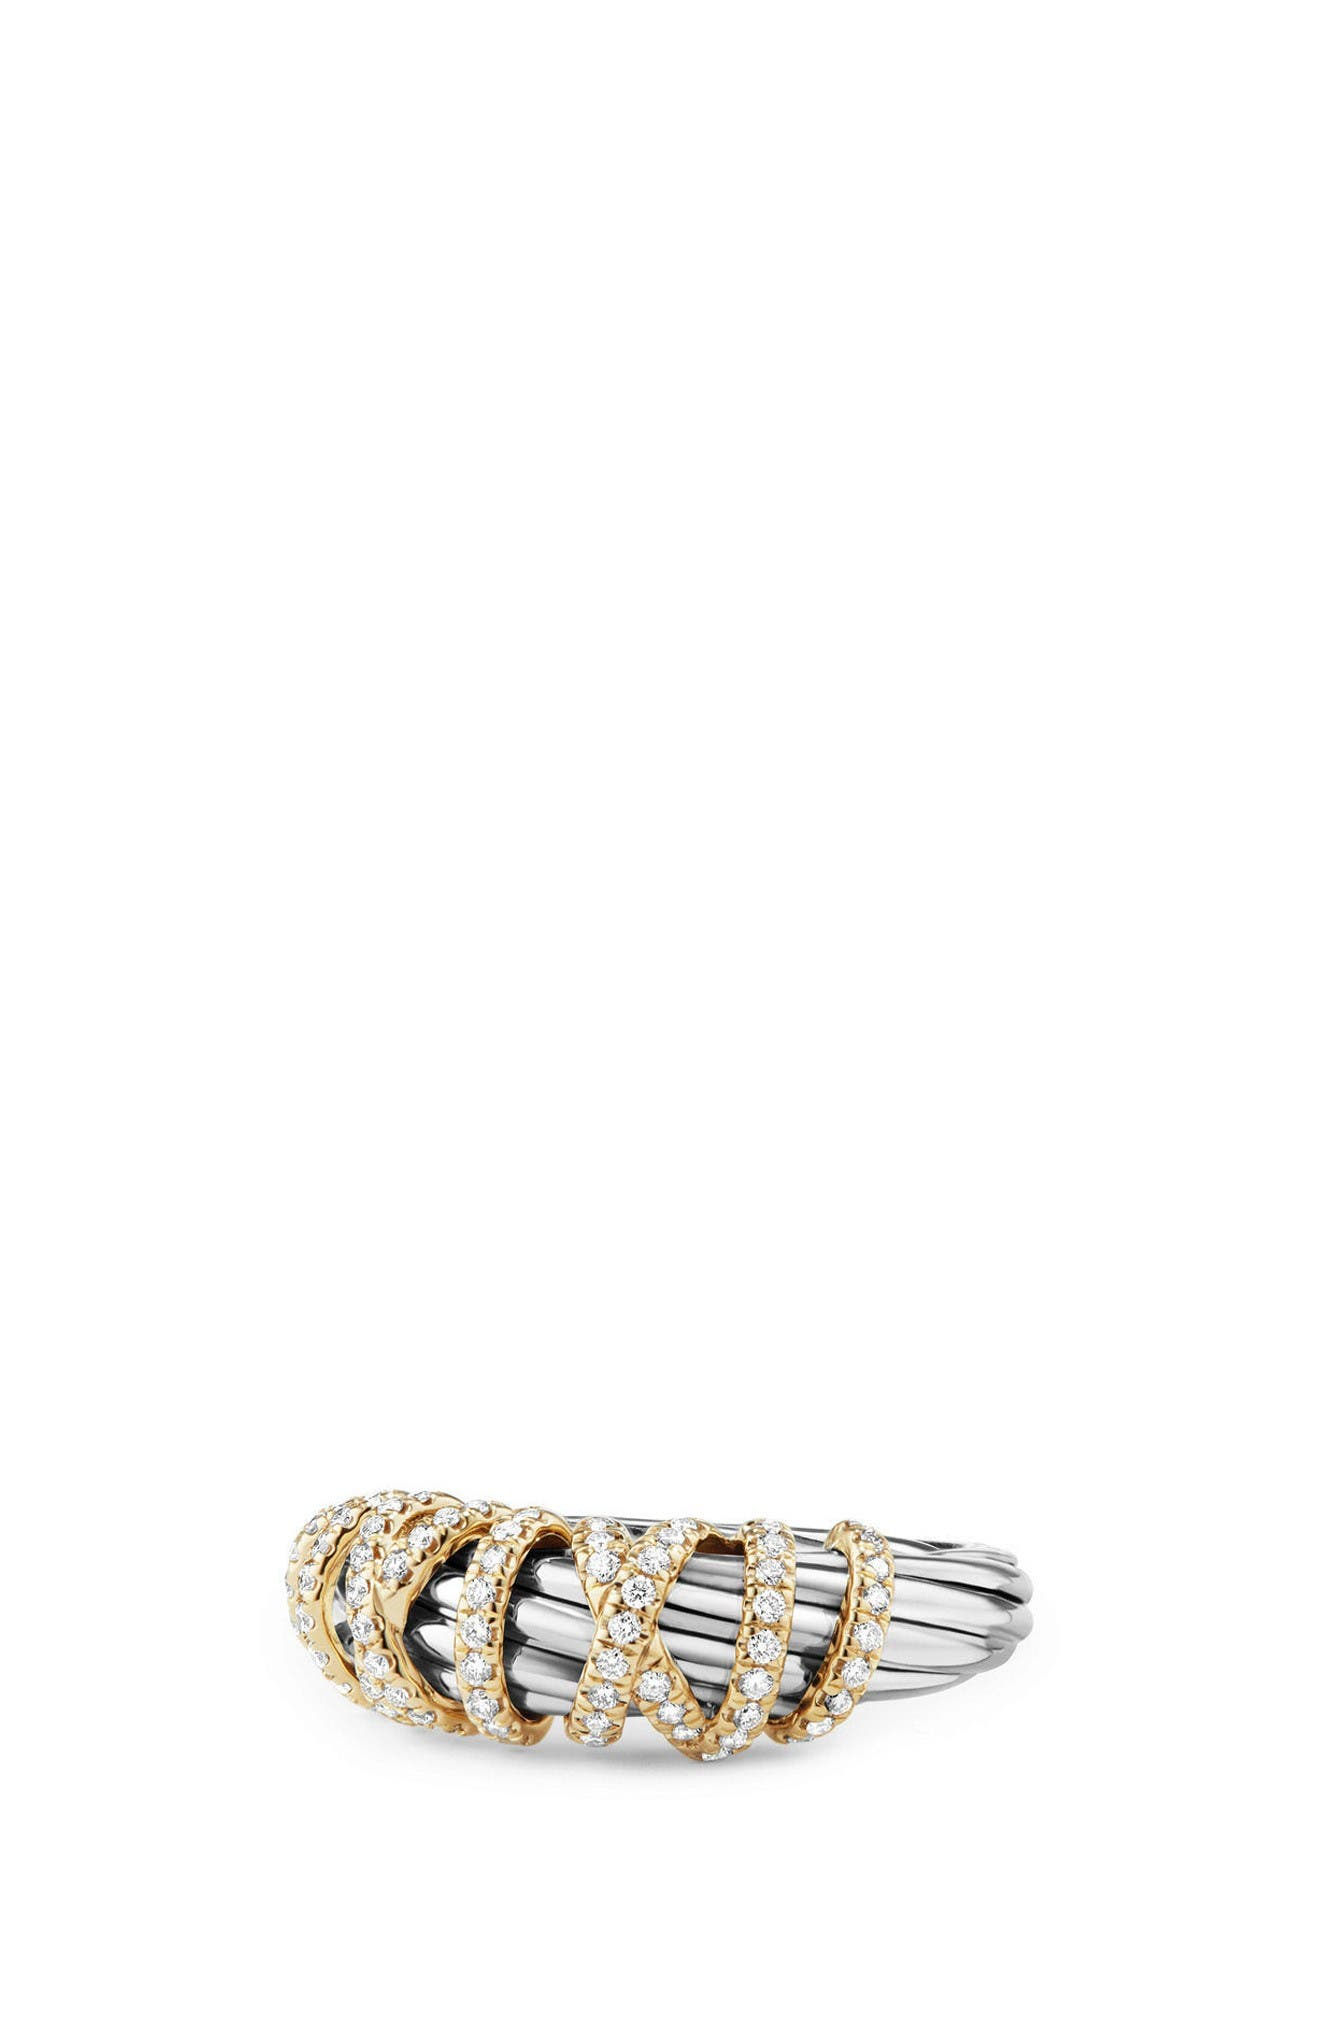 DAVID YURMAN Ring with Diamond and 18K Gold, 8mm